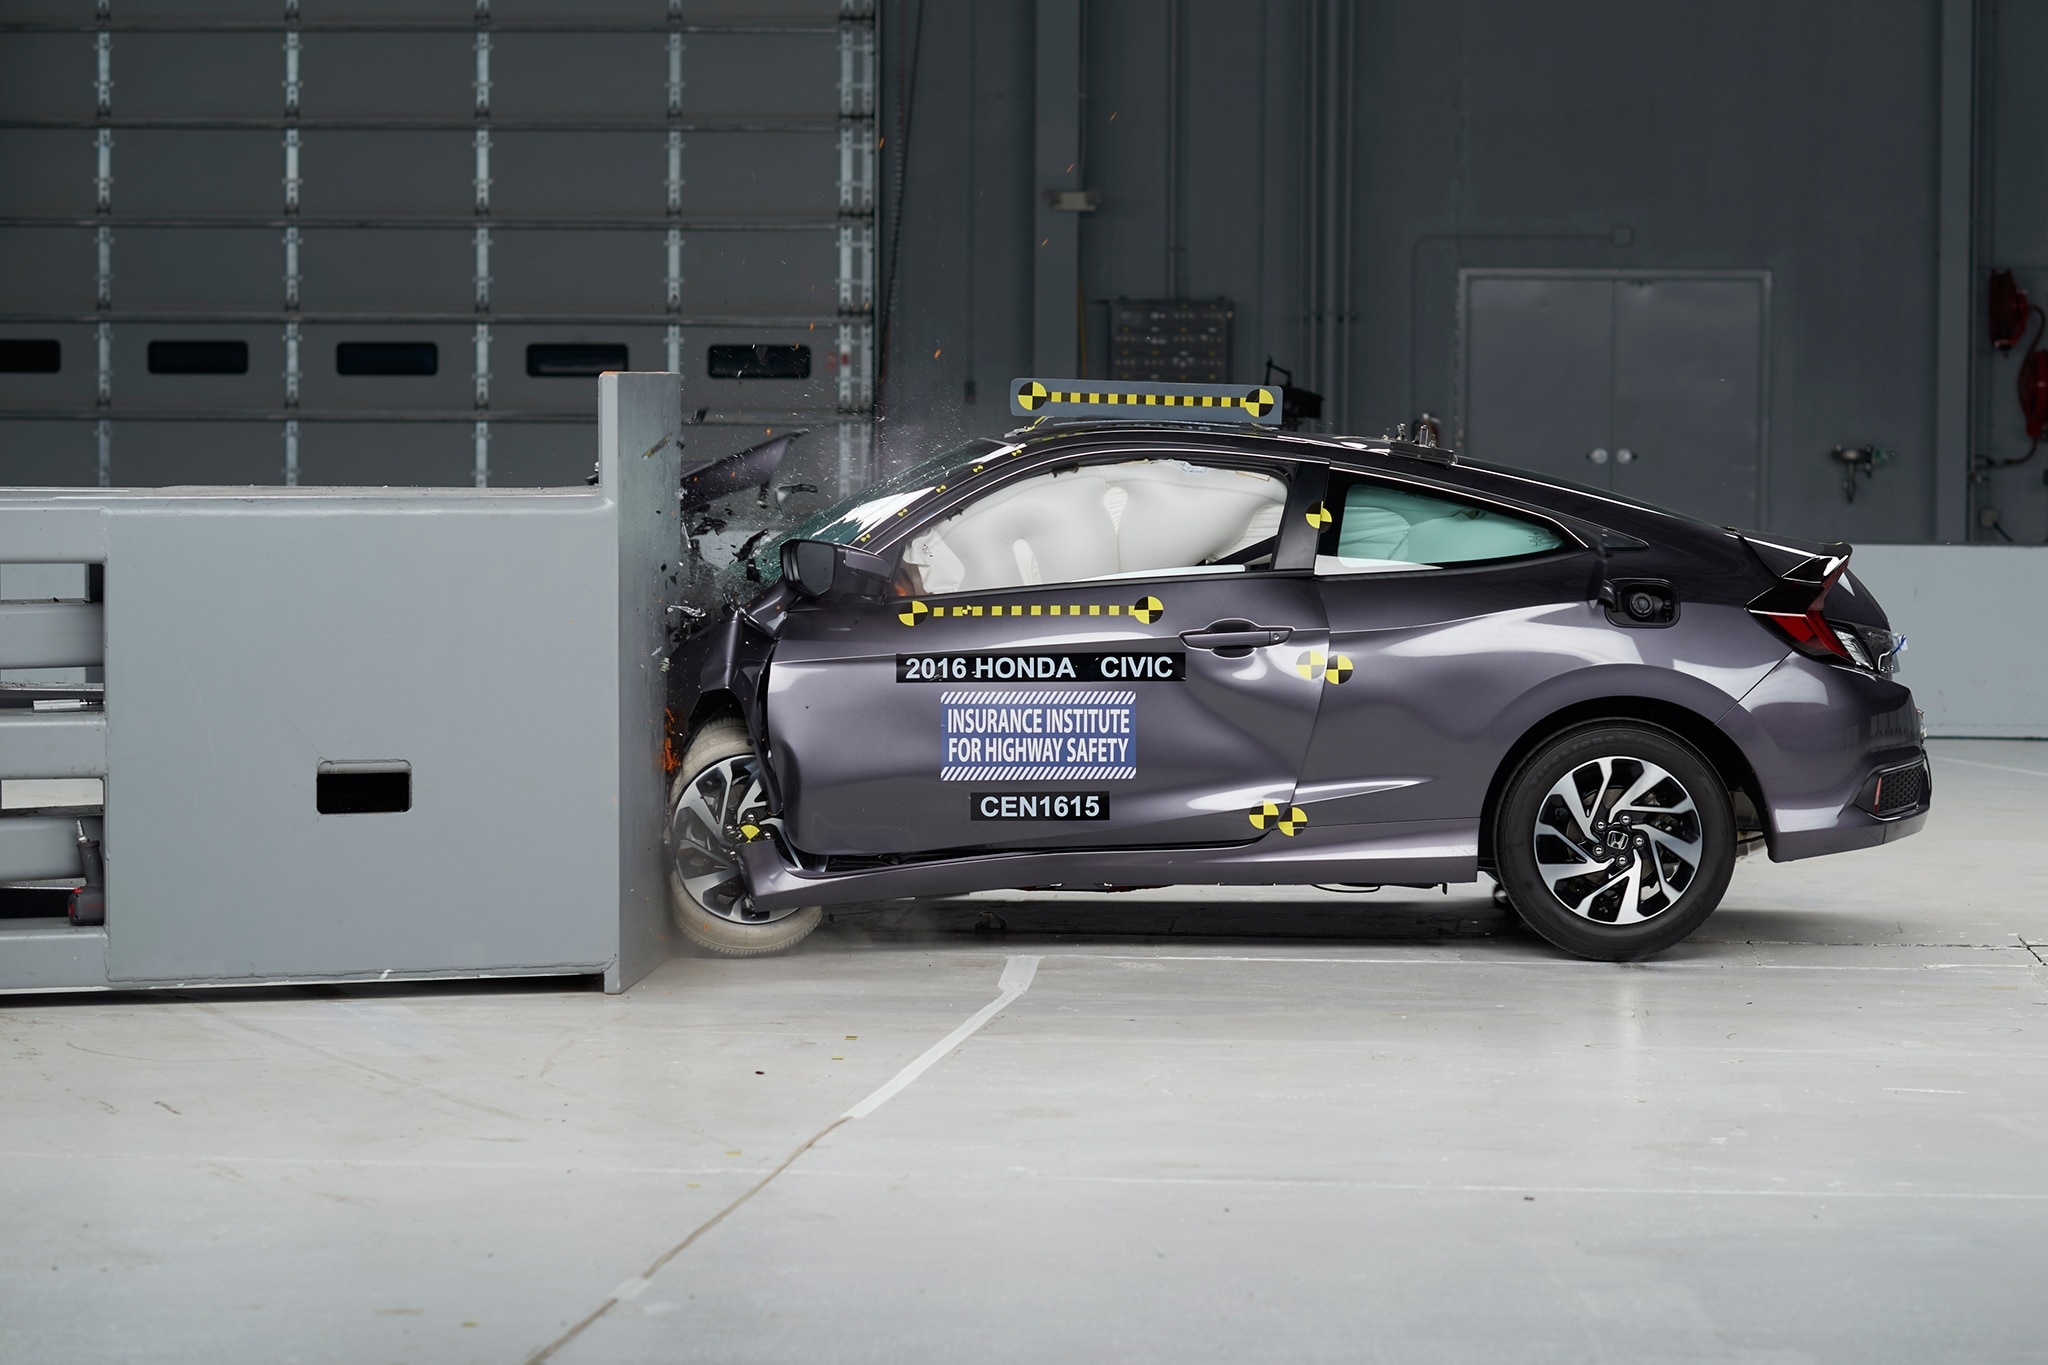 2016 Honda Civic Coupe IIHS testing side profile crash